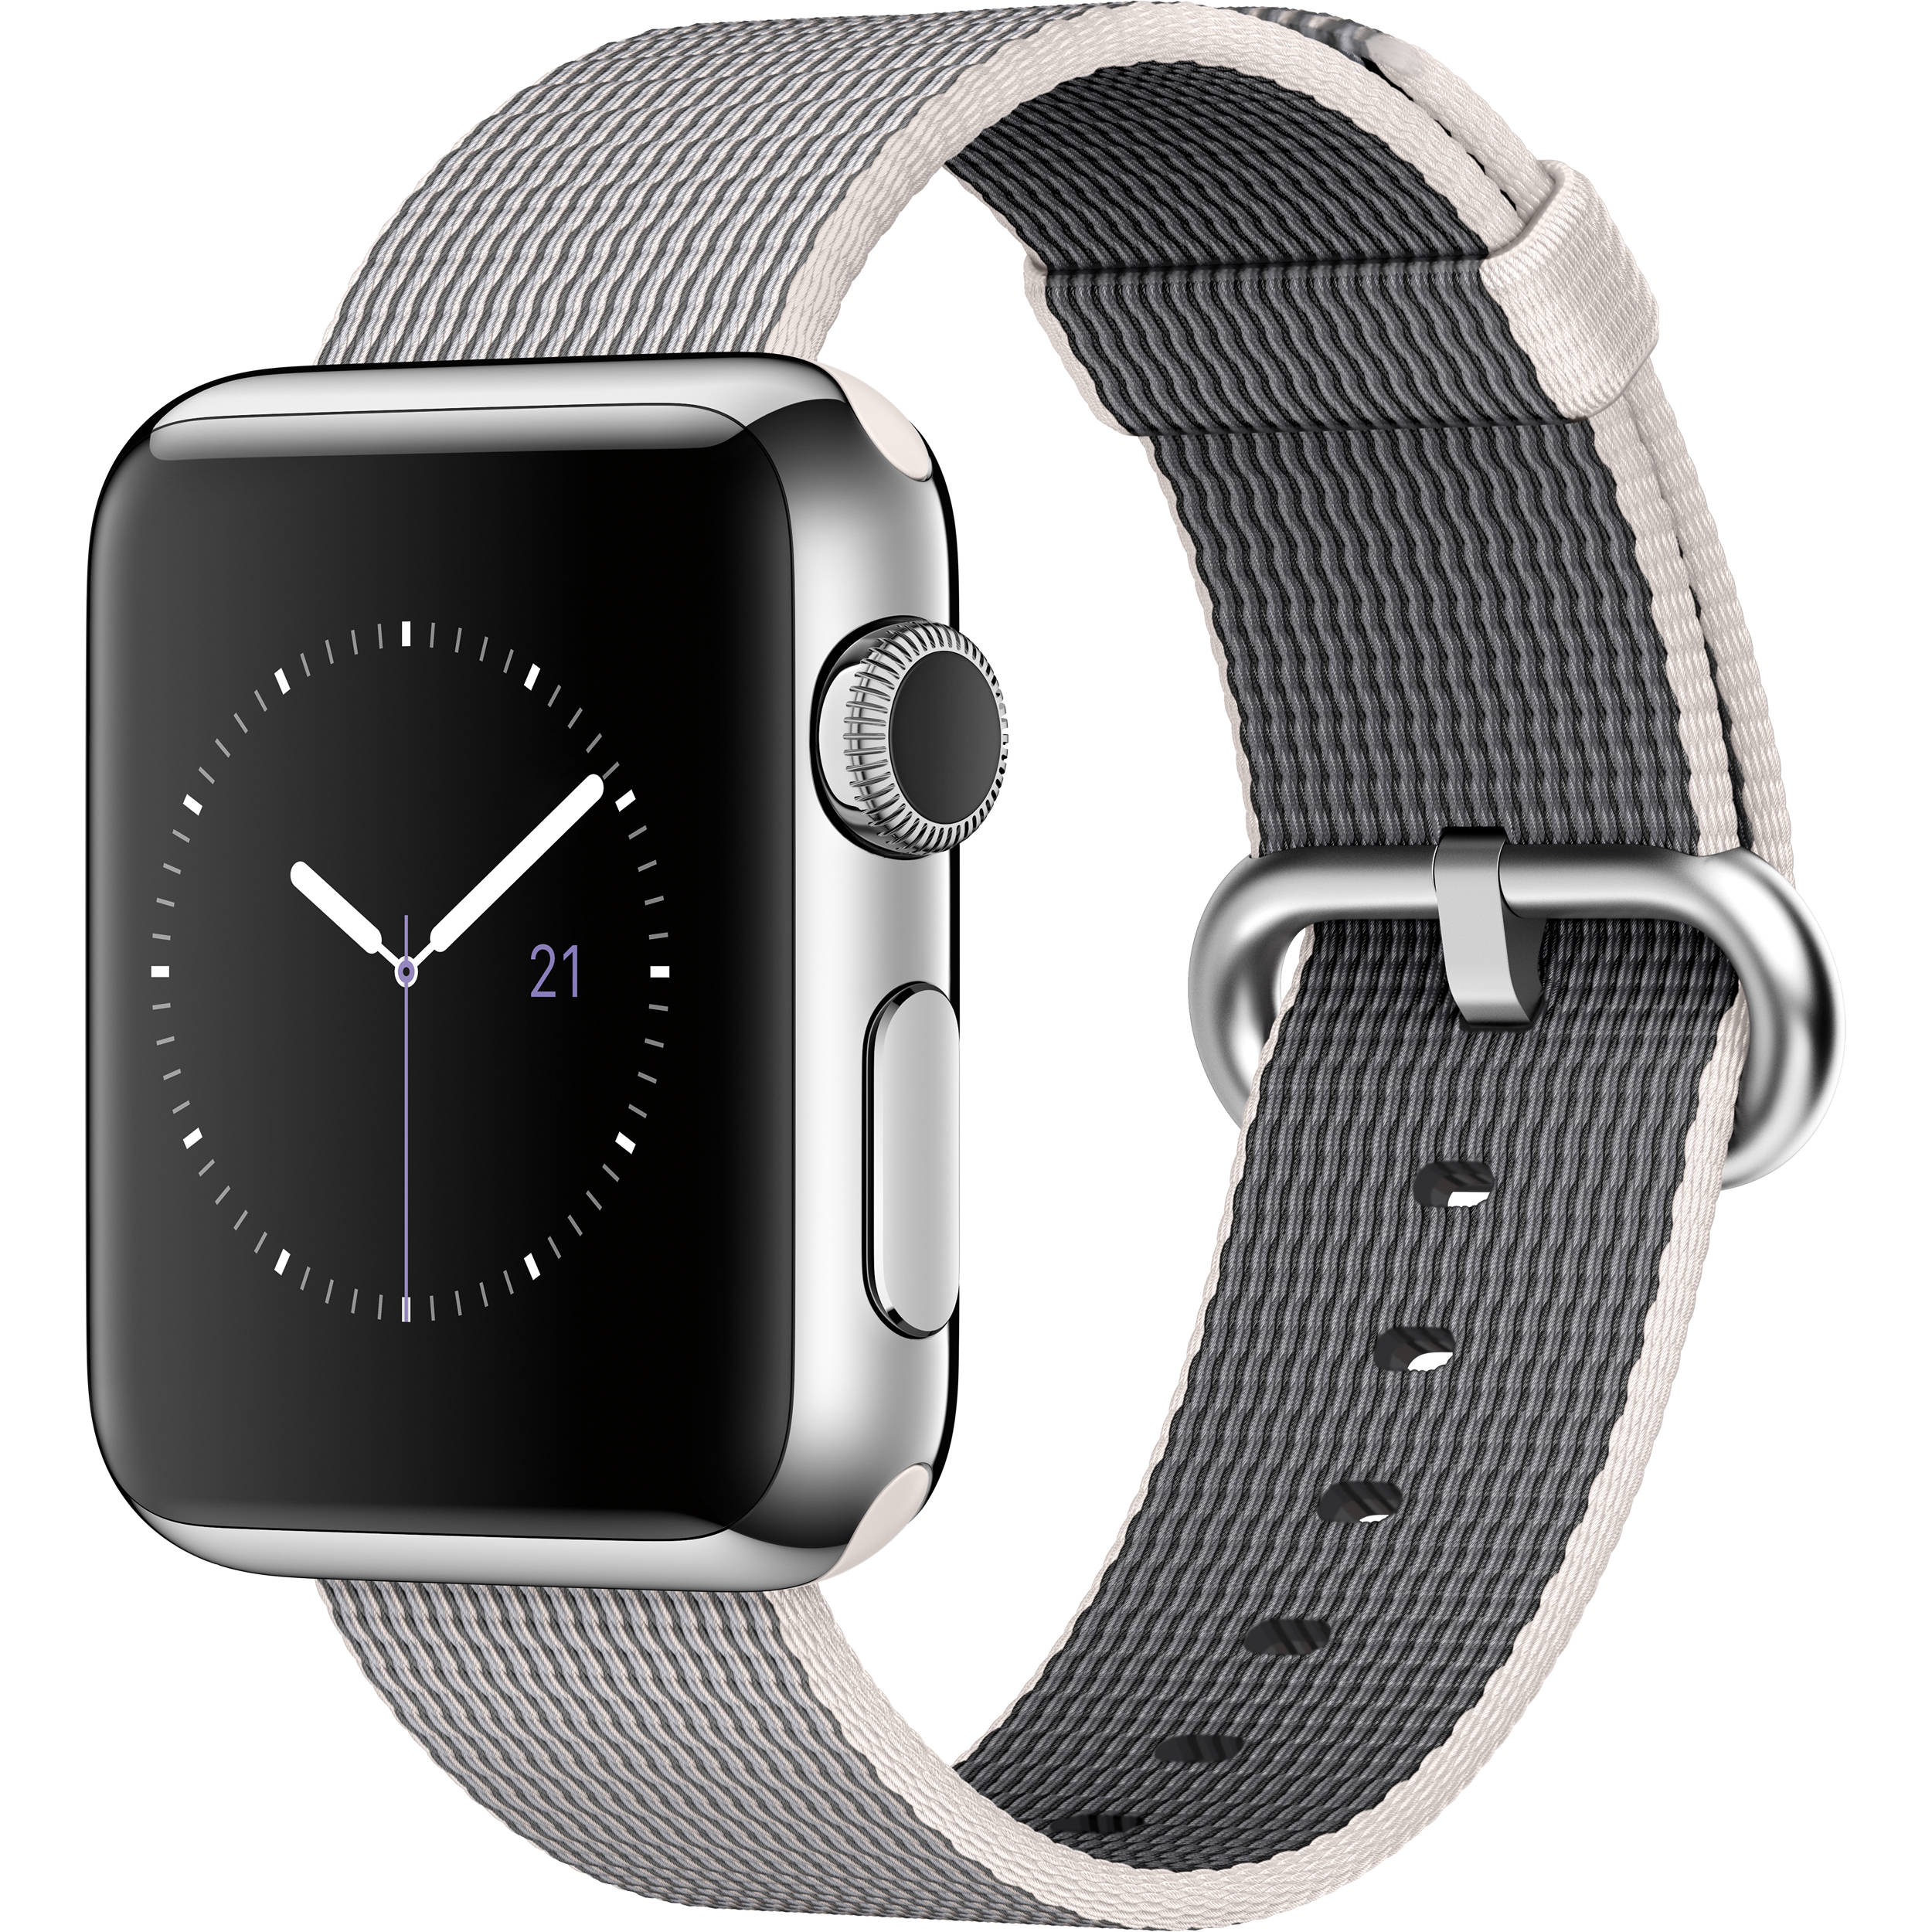 lowest price 7ce91 b6118 Apple Watch 38mm Smartwatch (2015, Stainless Steel Case, Pearl Woven Nylon  Band)